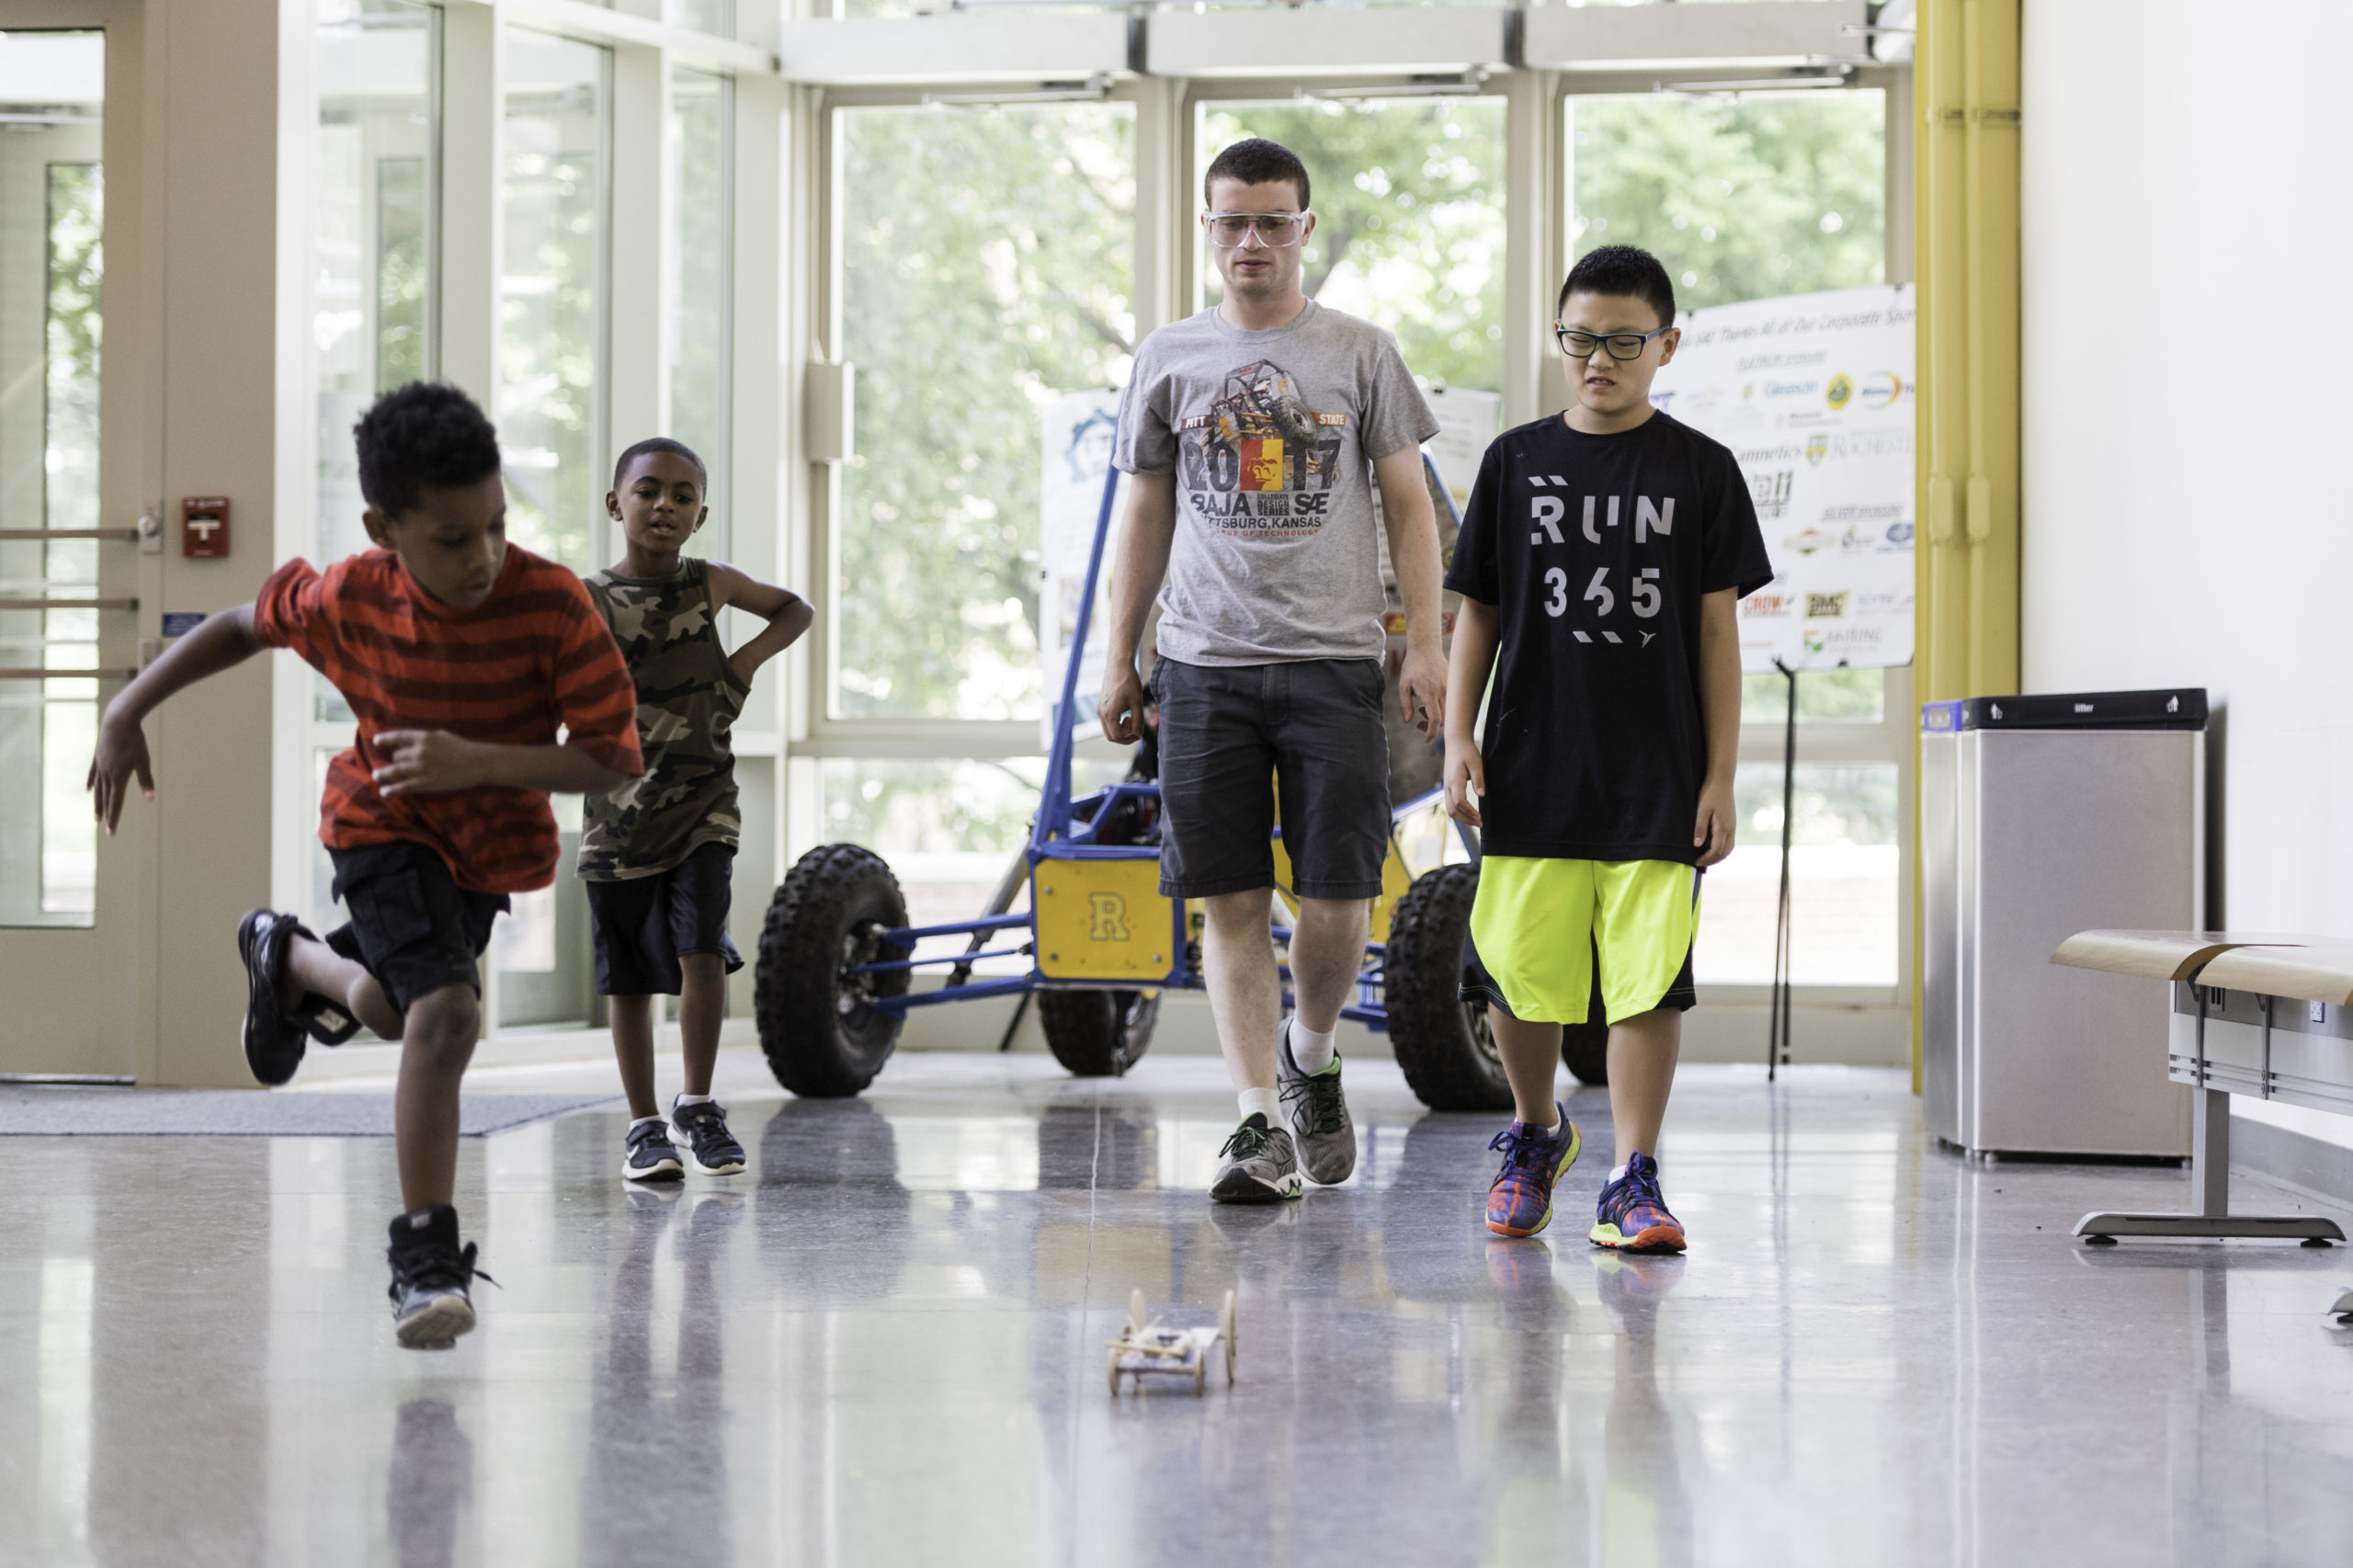 Horizons students in Rettner Hall